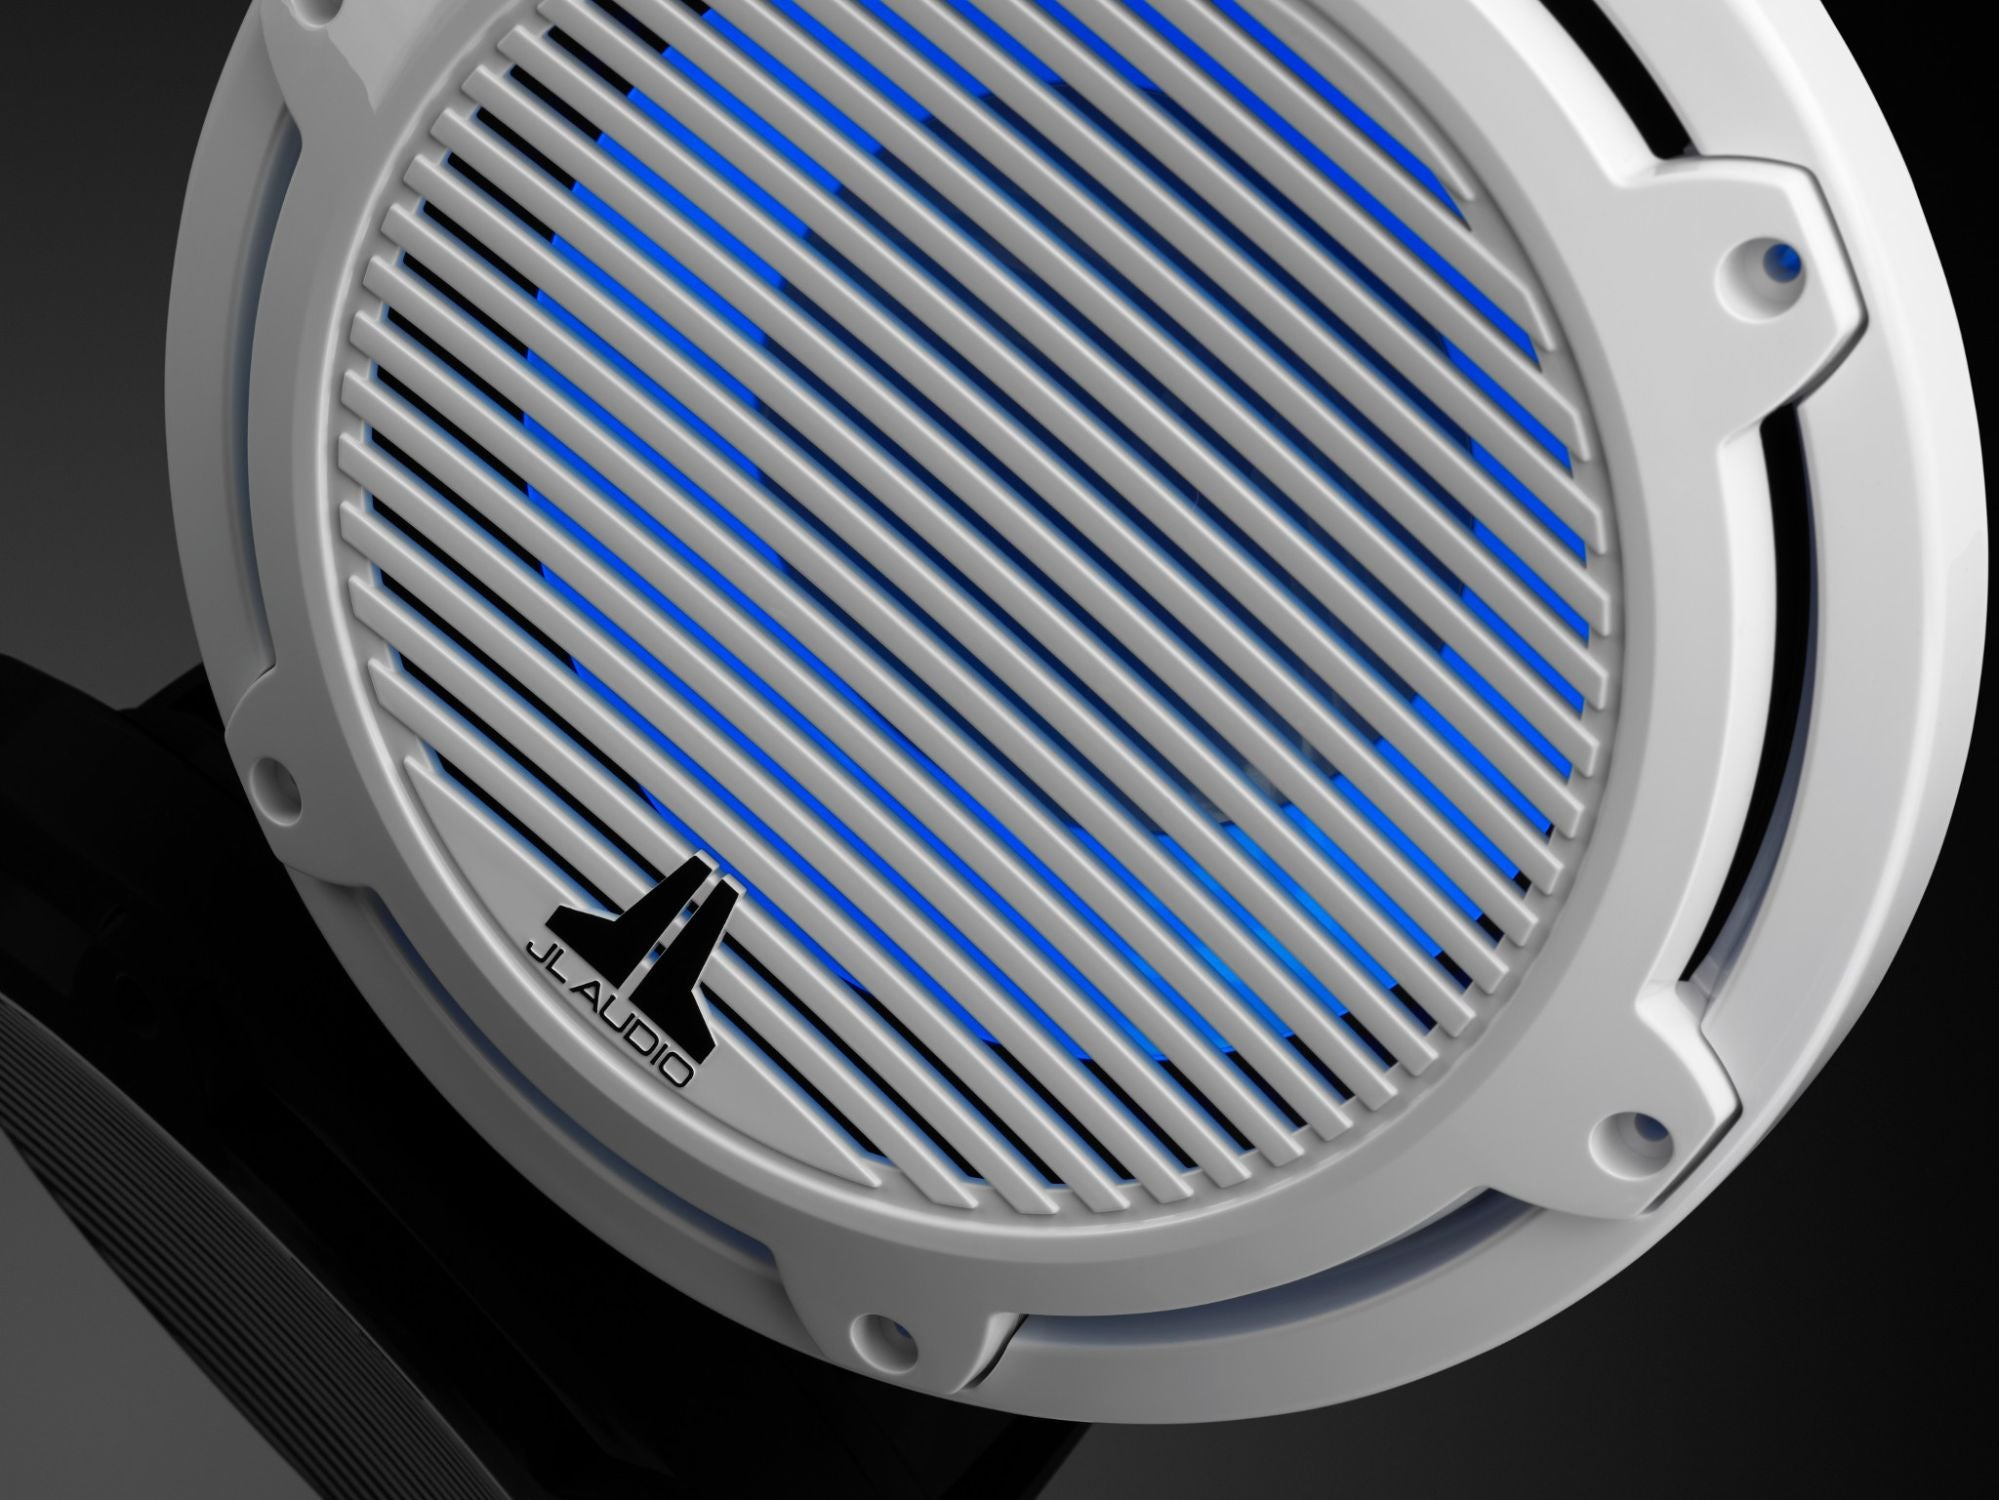 Detail of M6-10IB-C-GwGw-i-4 Subwoofer Lit with Blue